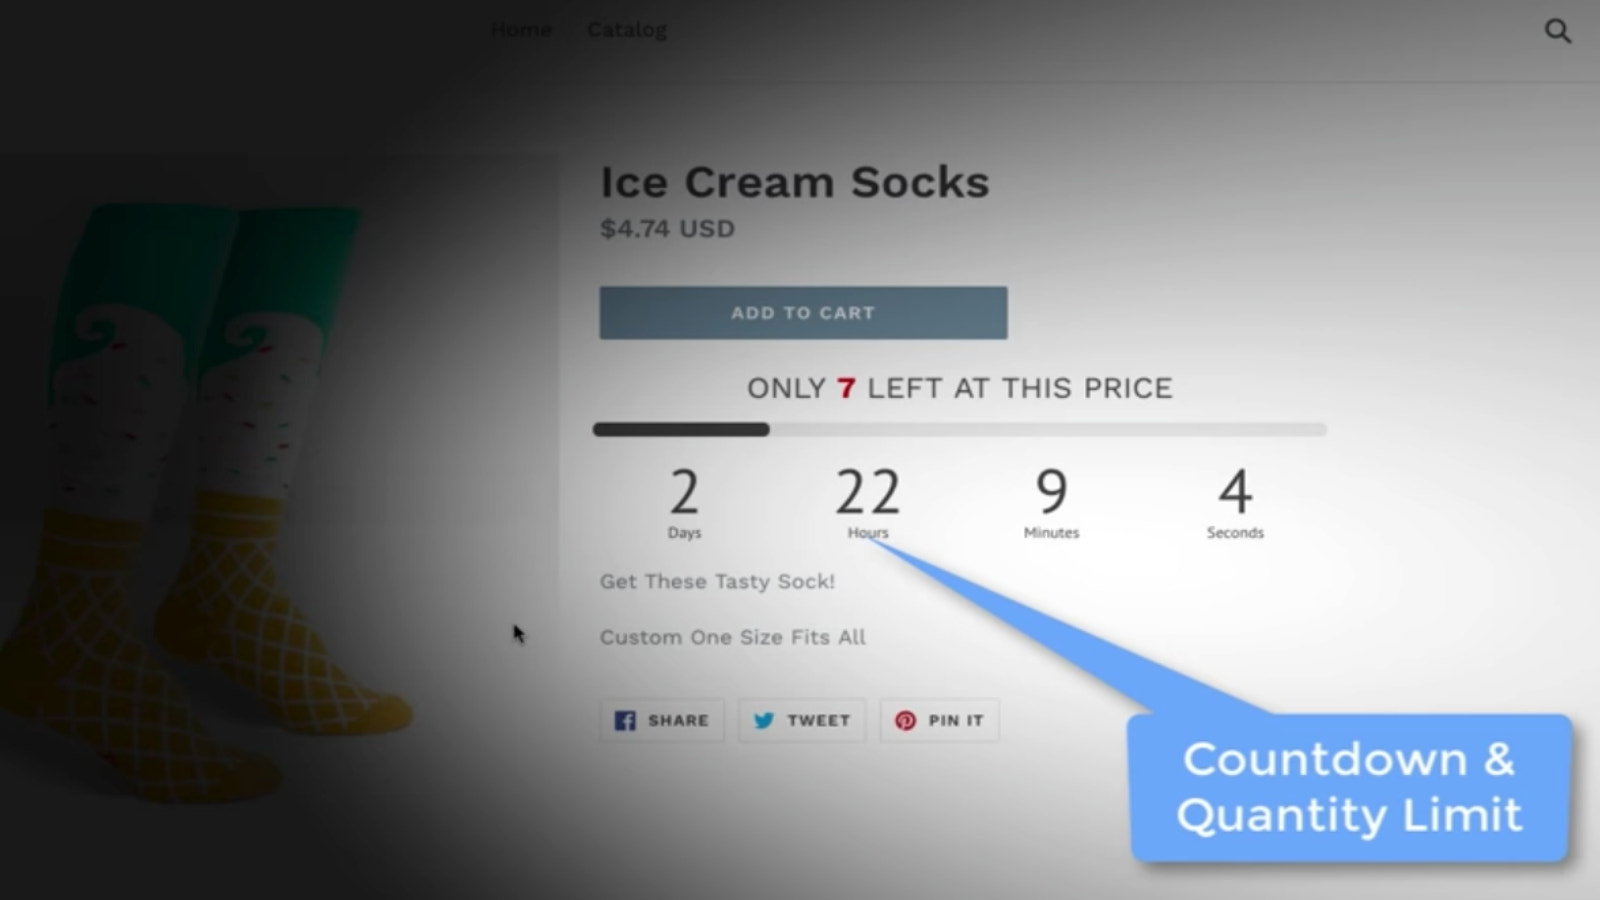 Product Page Timer and Items Left Count Down